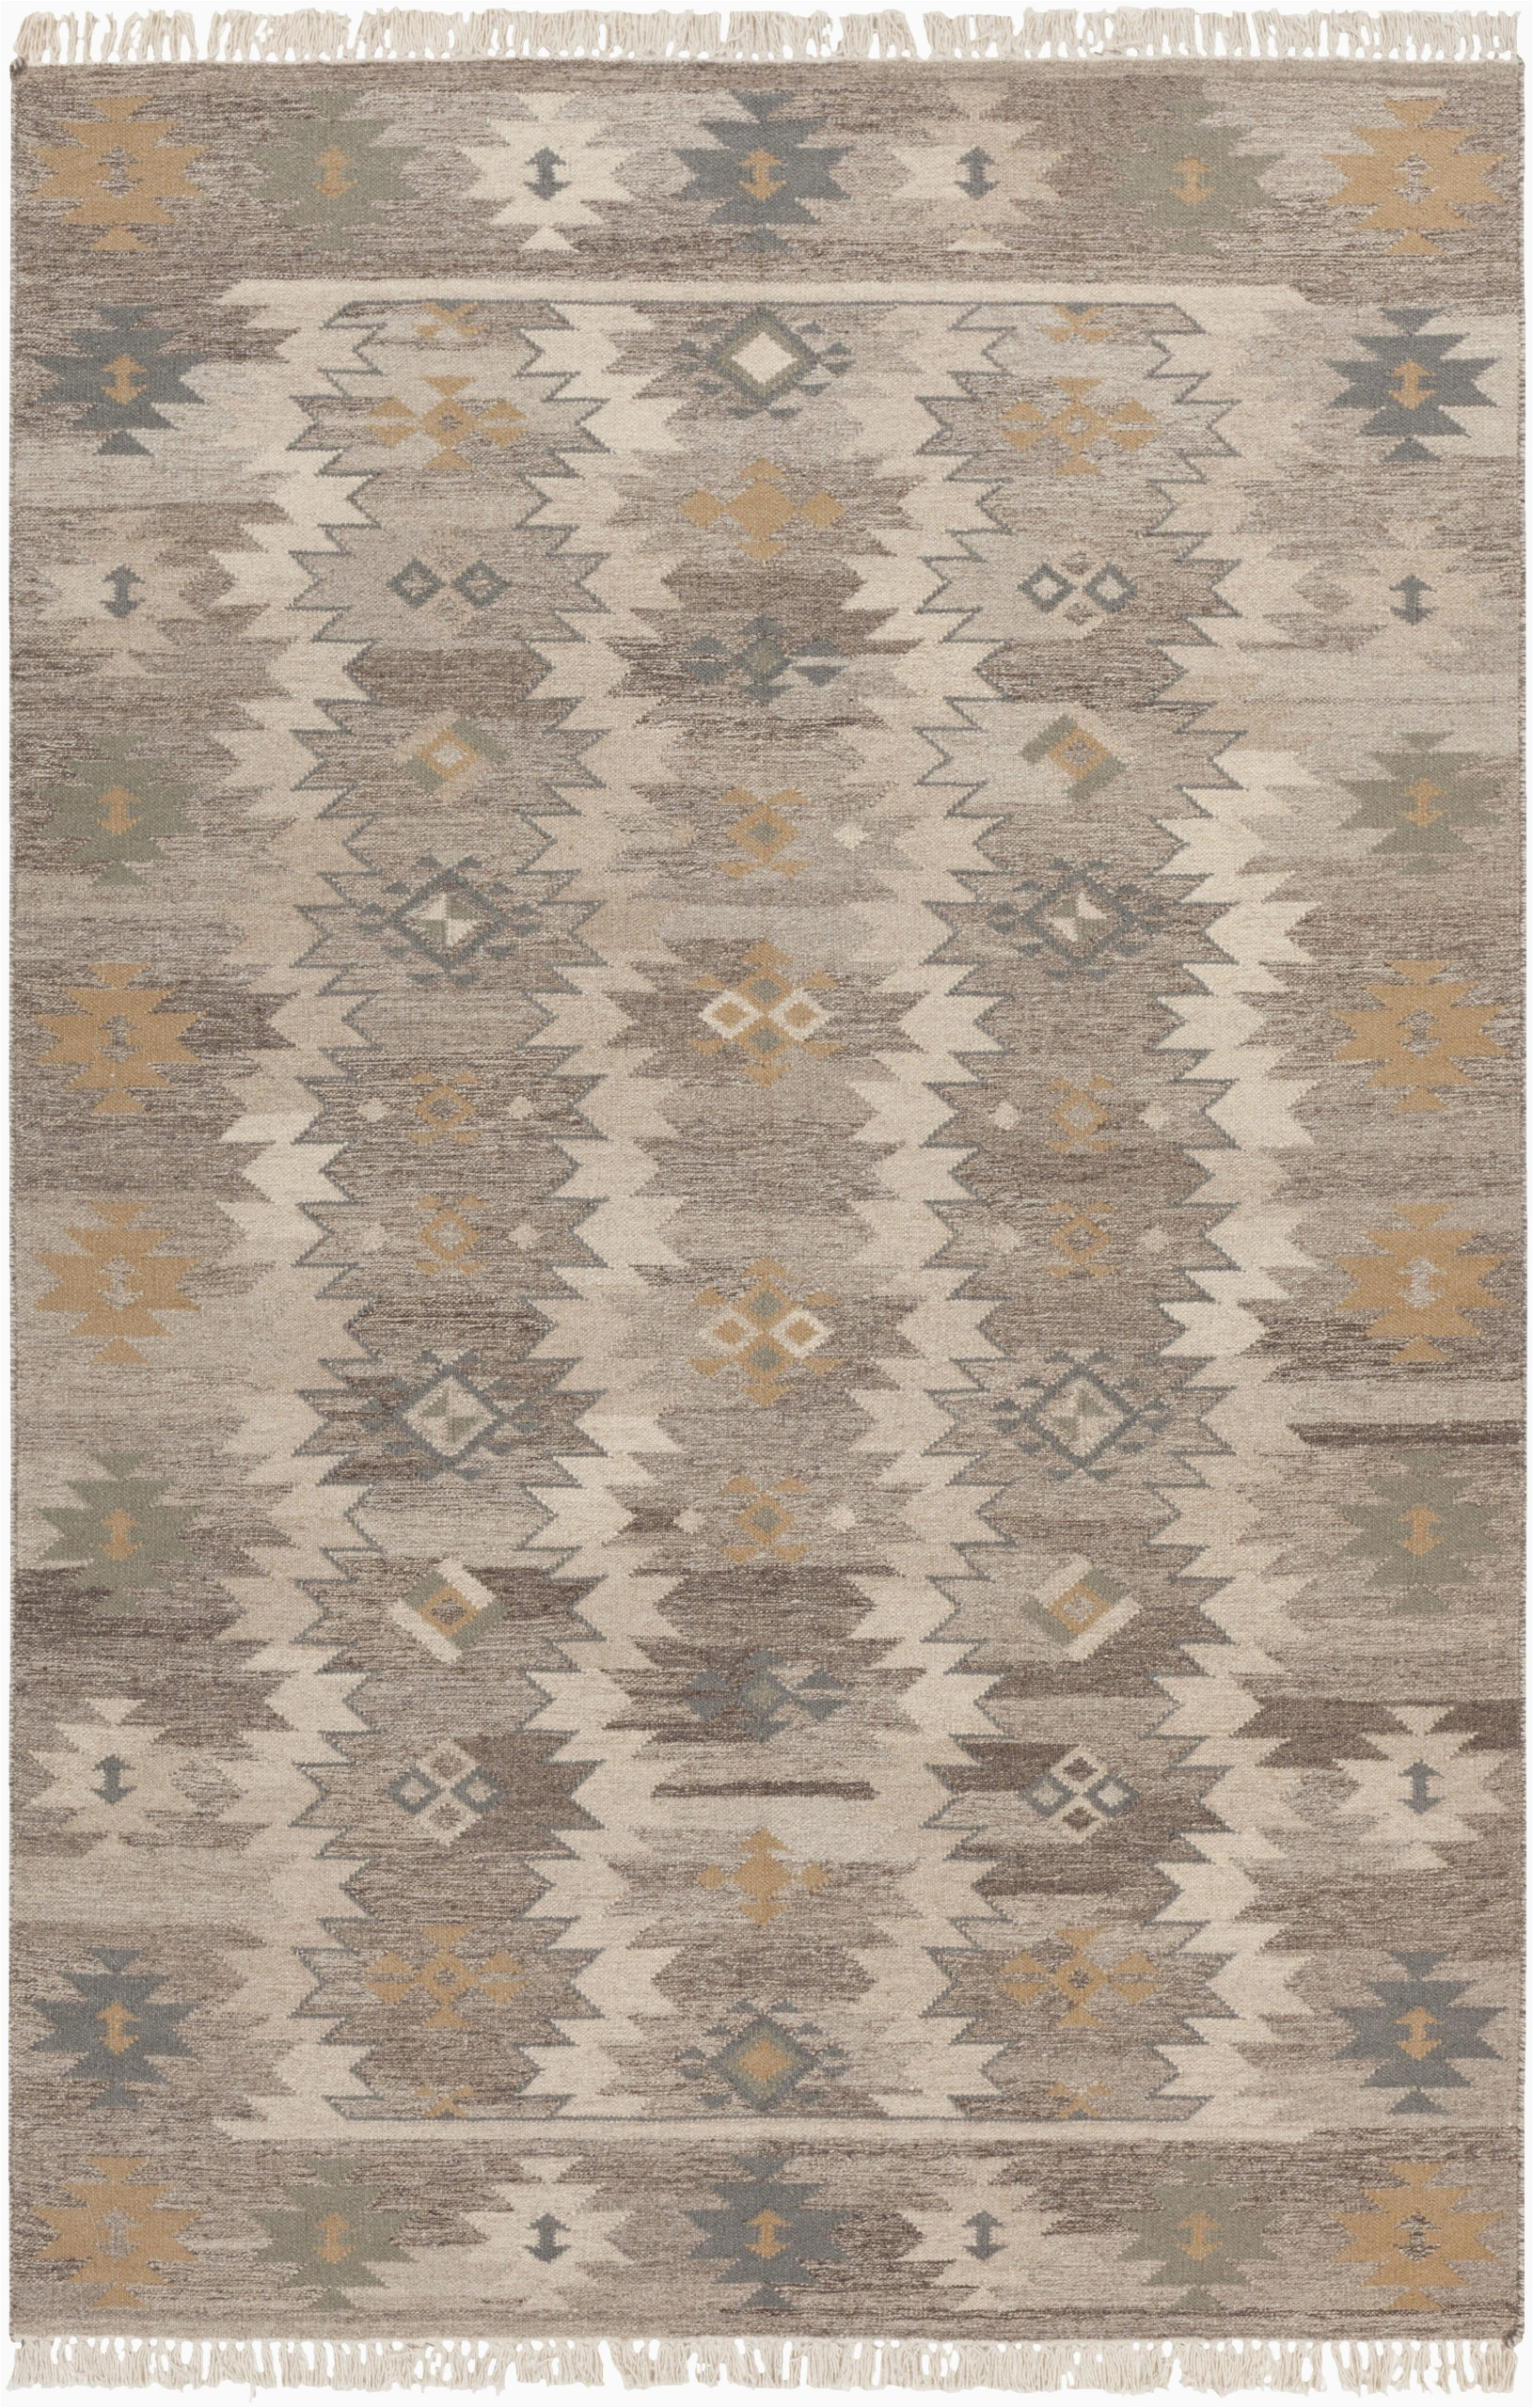 Plastic Cover for area Rug Surya Monterrey Woven Wool Beige area Rug Reviews Rugs